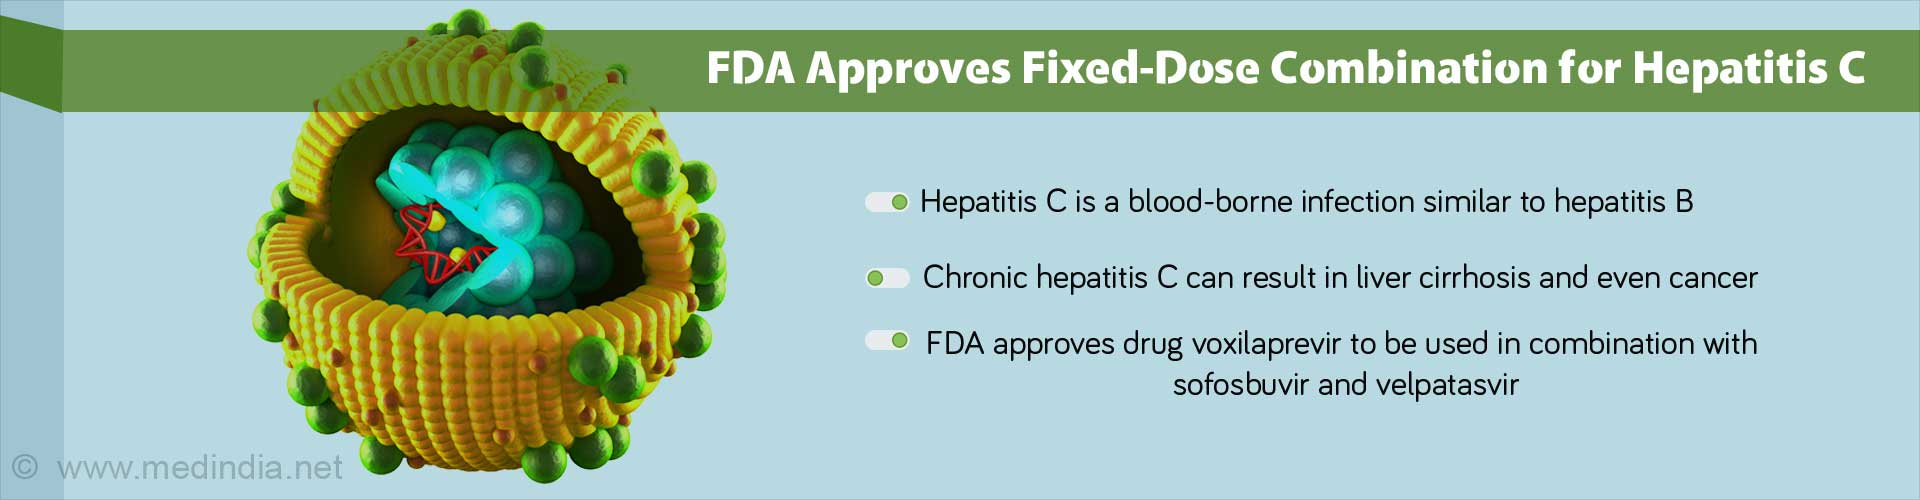 FDA Approves Fixed-Dose Combination for Hepatitis C - Hepatitis C is a blood-borne infection similar to Hepatitis B - Chronic Hepatitis C  can result in liver cirrhosis and even cancer - FDA approves drug voxilaprevir to be used in combination with sofosbuvir and velpatasvir